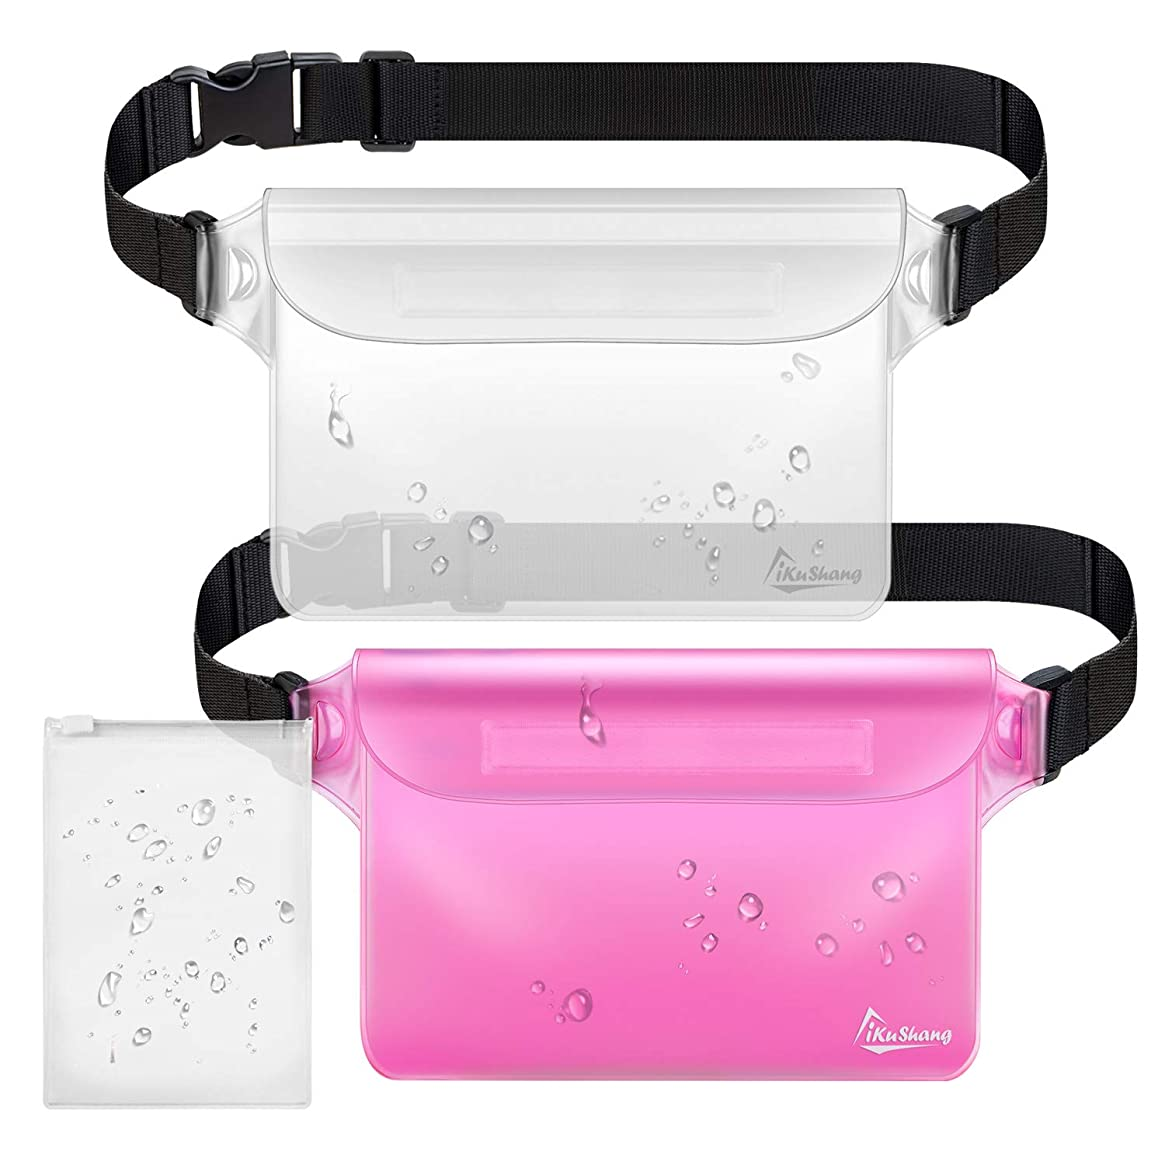 iKuShang Waterproof Pouch 2 Pack/3 Pack Waterproof Fanny Pack Waterproof Phone Case Waterproof Wallet Protect Your Valuables Safe & Dry Perfect for Boating Swimming Beach Pool Water Parks